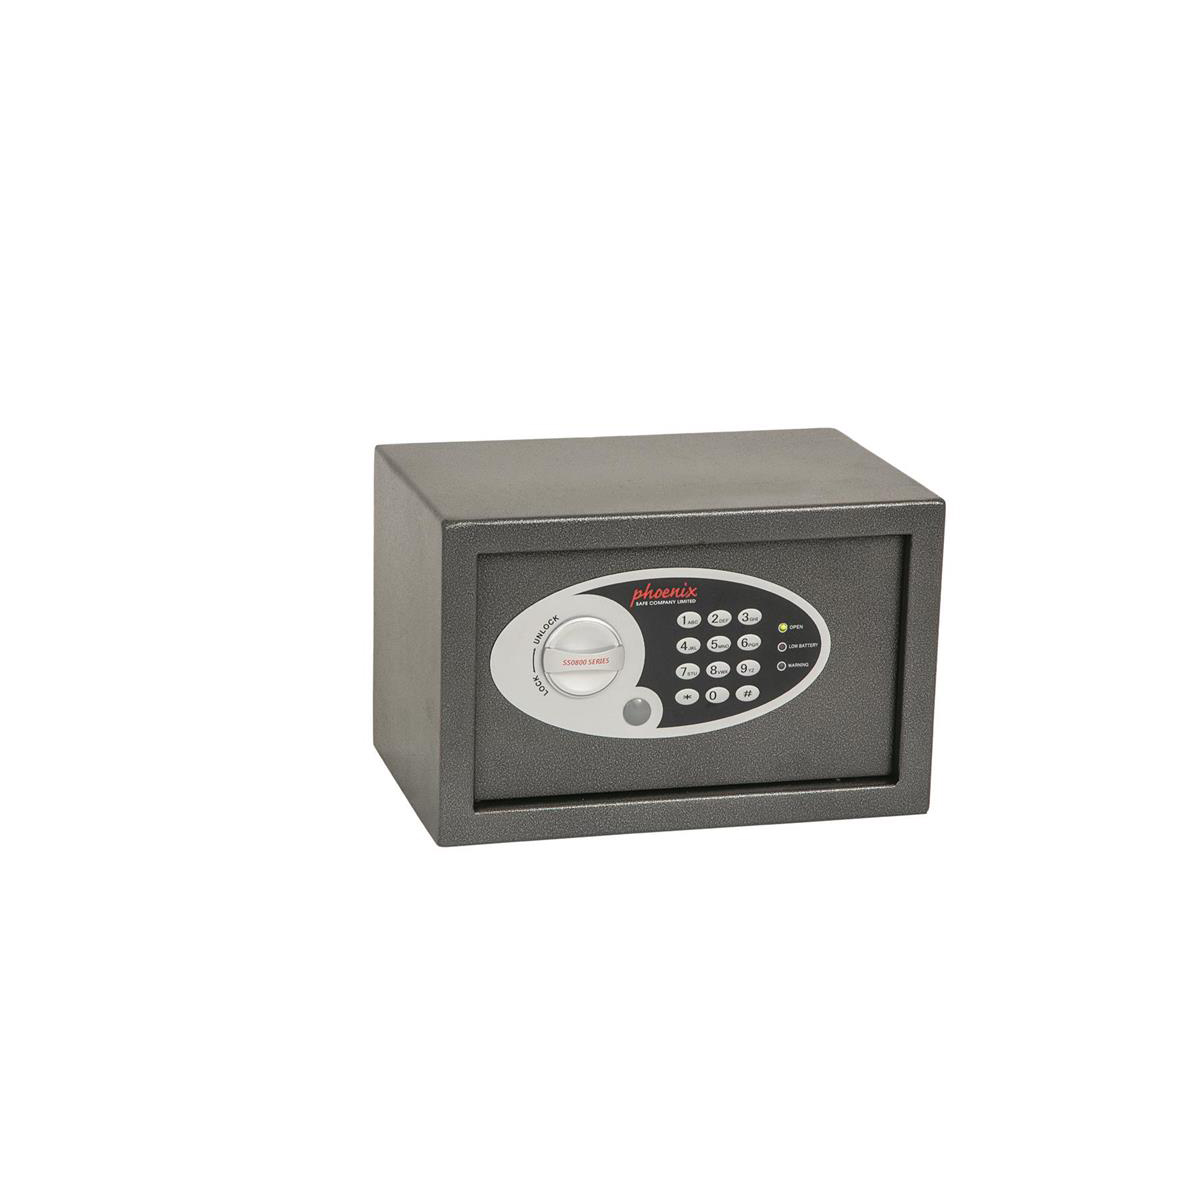 Phoenix Compact Safe Home or Office Electronic Lock 10L Capacity 6kg W310xD200xH200mm Ref SS0801E